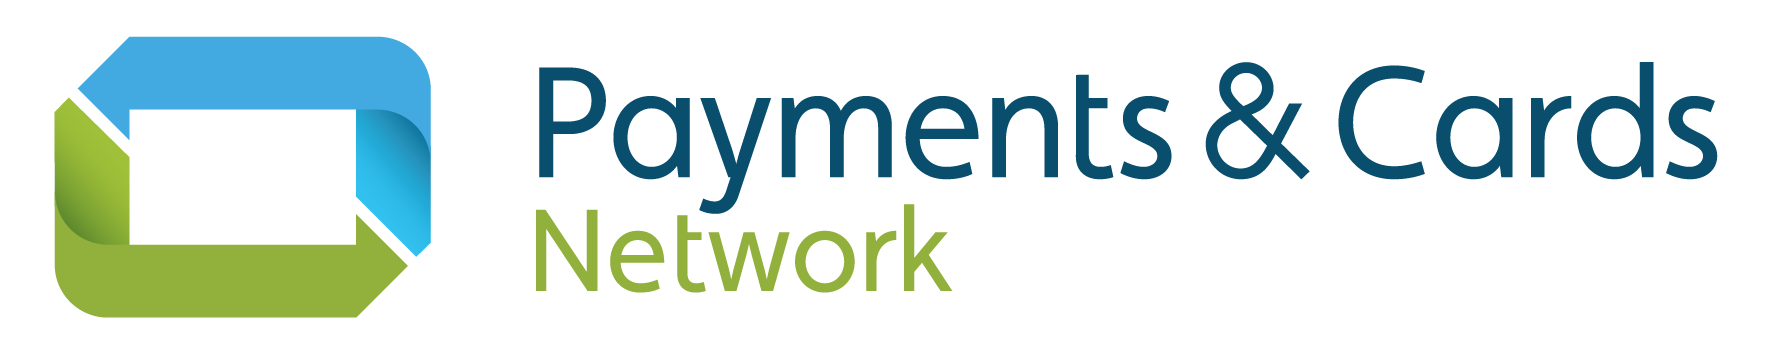 PCNetwork_logo.png